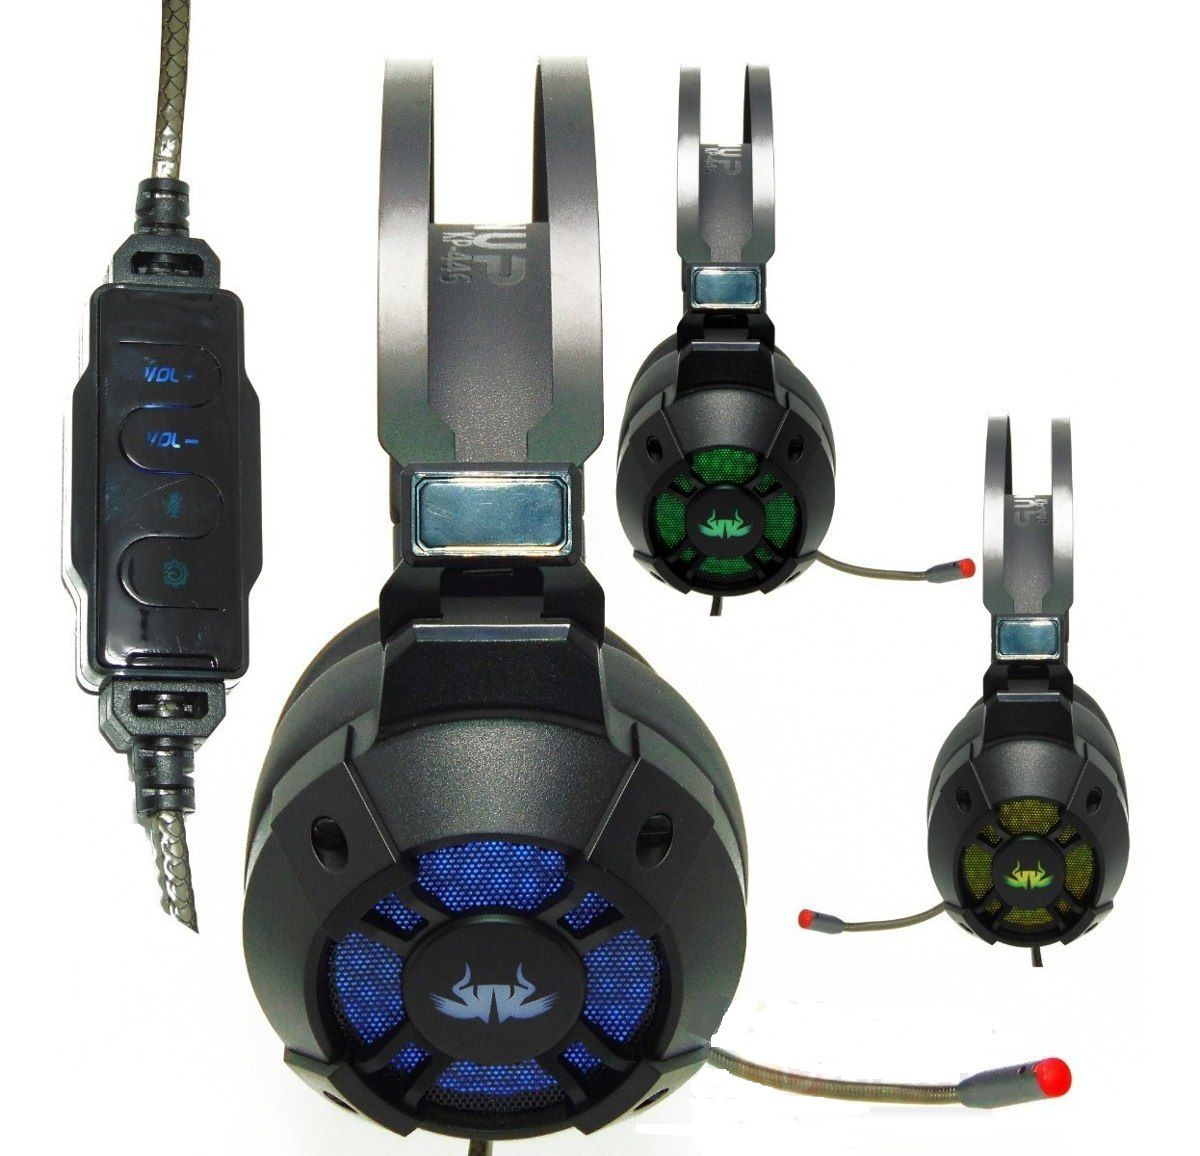 Fone Headset Gamer 7.1 Usb Pc Vibration Extreme Knup Kp-446